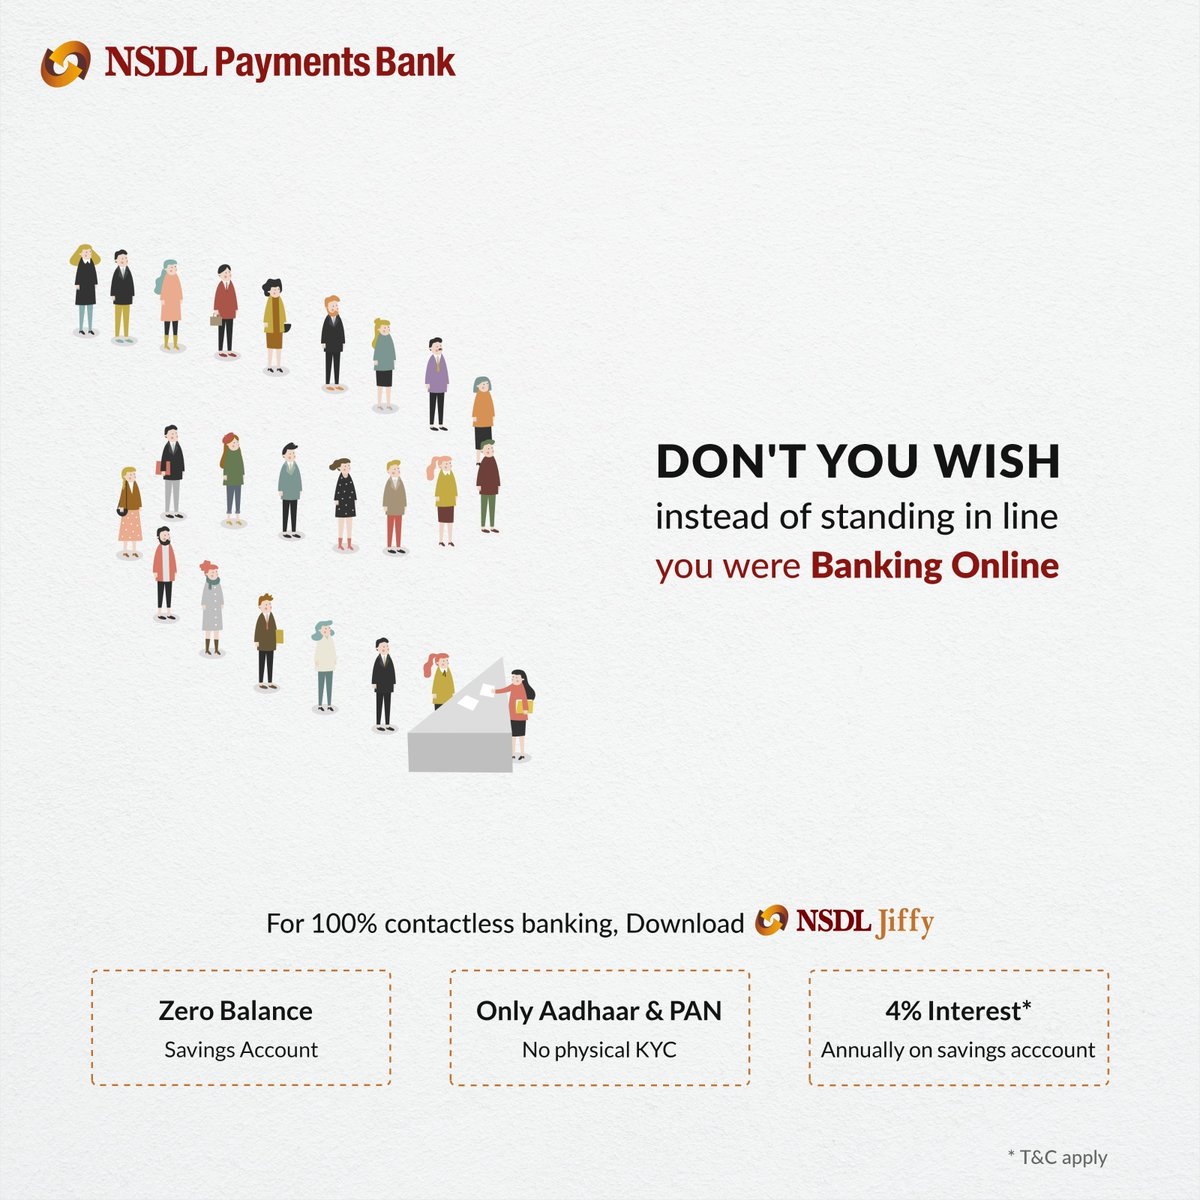 Why waste time standing in queues when you could bank from home, just using your mobile. Open a Zero Balance account within a few minutes. Download NSDL Jiffy   #NSDLJiffy #NSDLPaymentsBank #NSDL #DigitalBanking #BankFromHome #ContactLessBanking